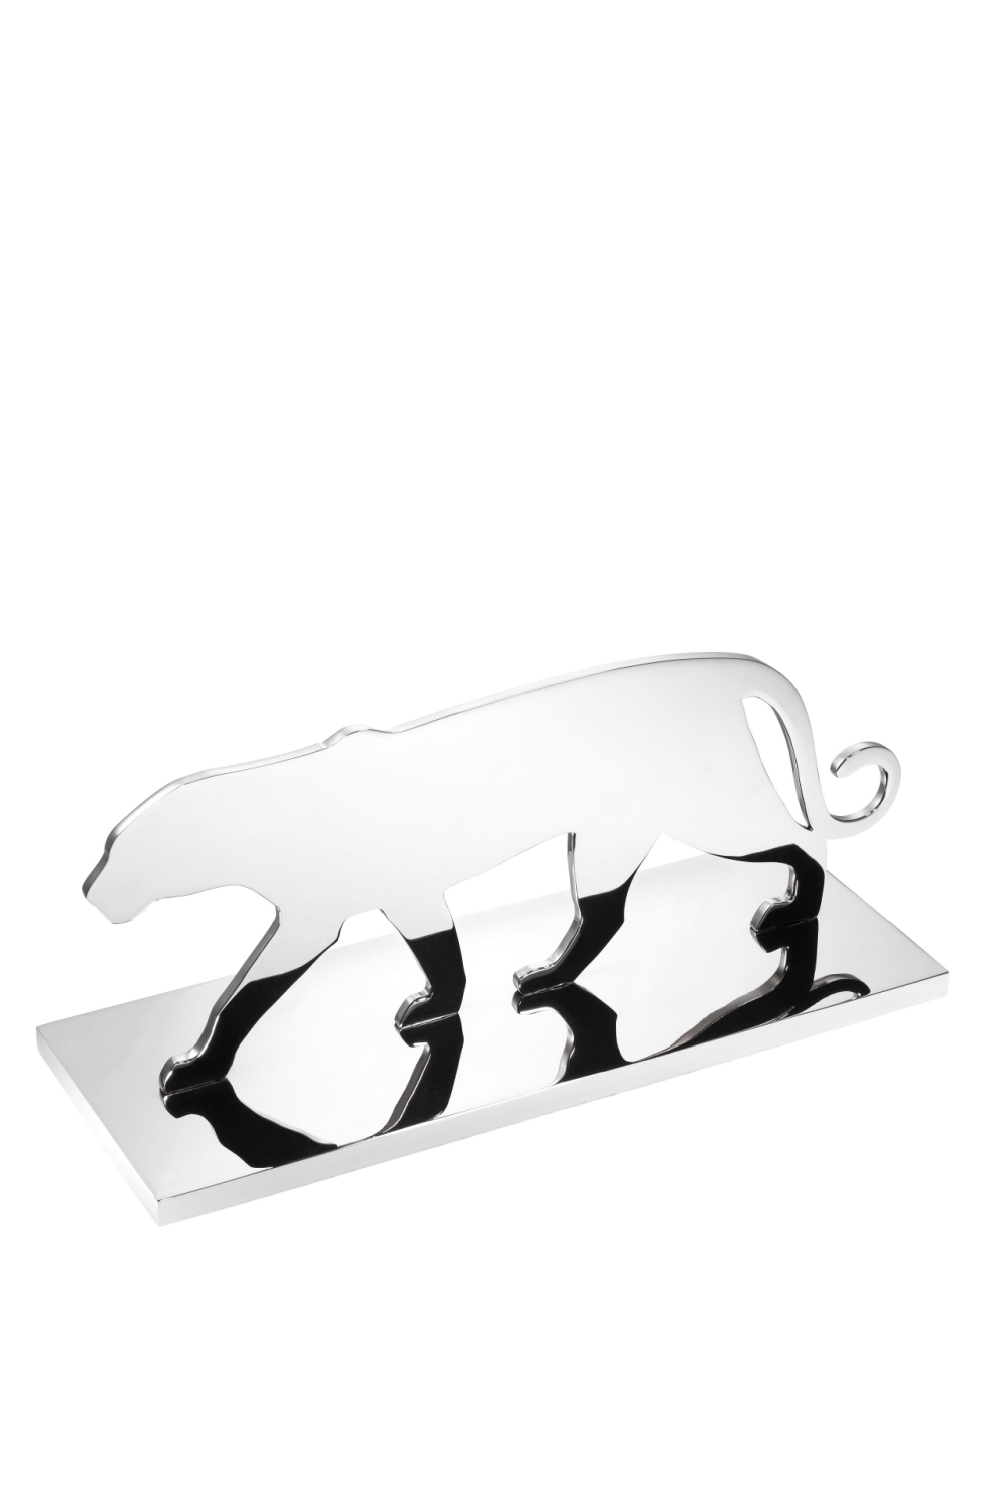 Silver Decorative Object | Eichholtz Panther Silhouette | OROA